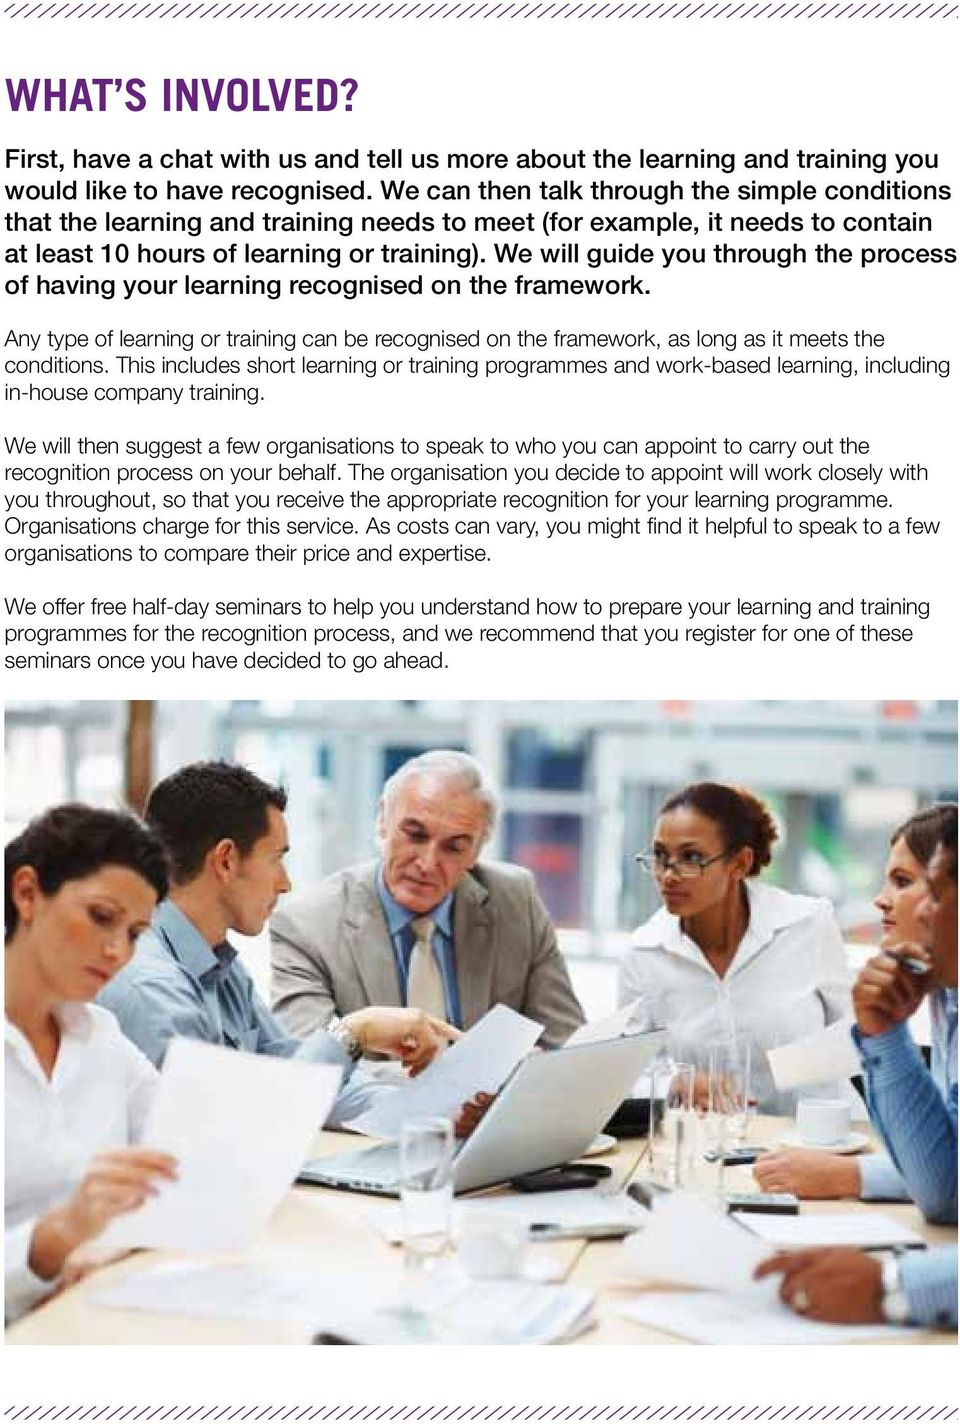 We will guide you through the process of having your learning recognised on the framework. Any type of learning or training can be recognised on the framework, as long as it meets the conditions.